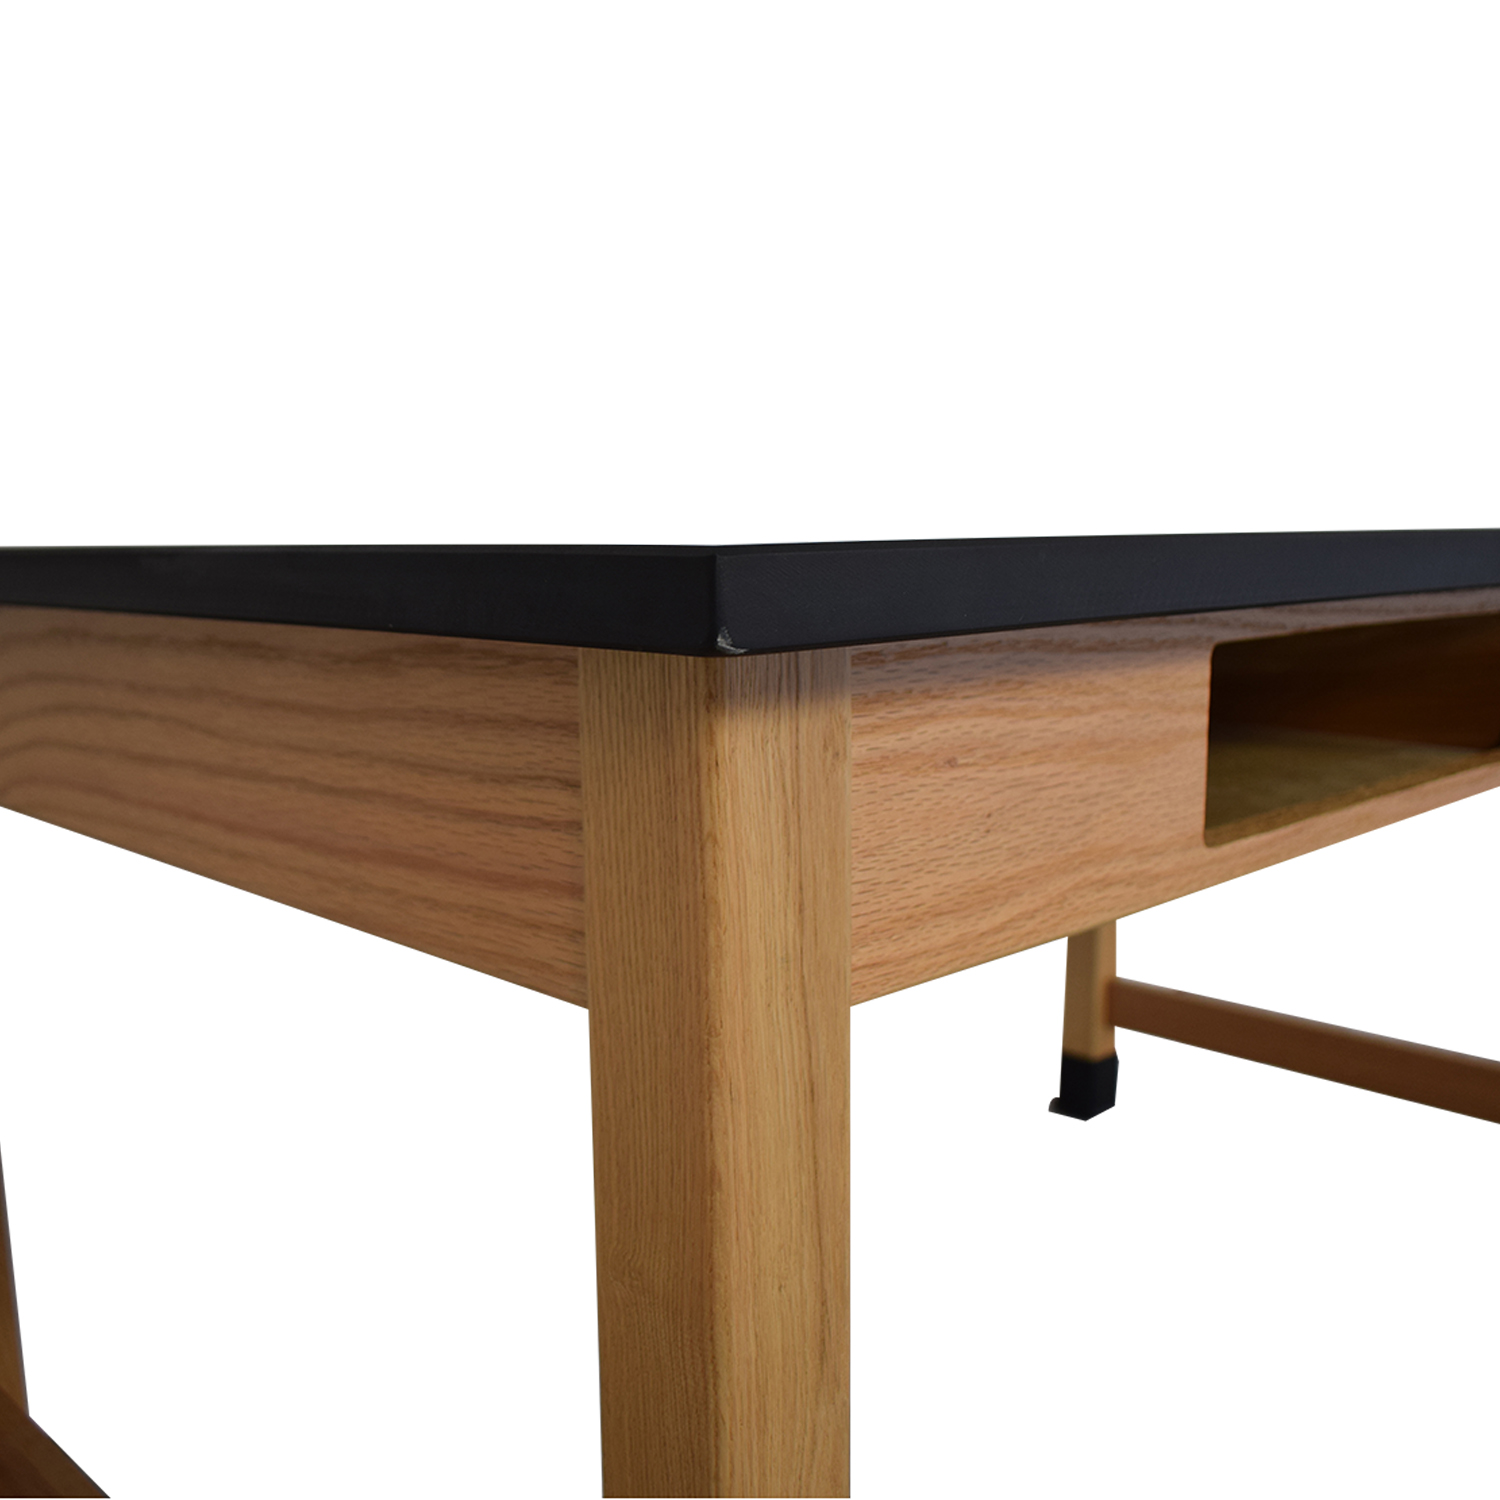 shop Diversified Woodcrafts Diversified Woodcrafts Science Table online